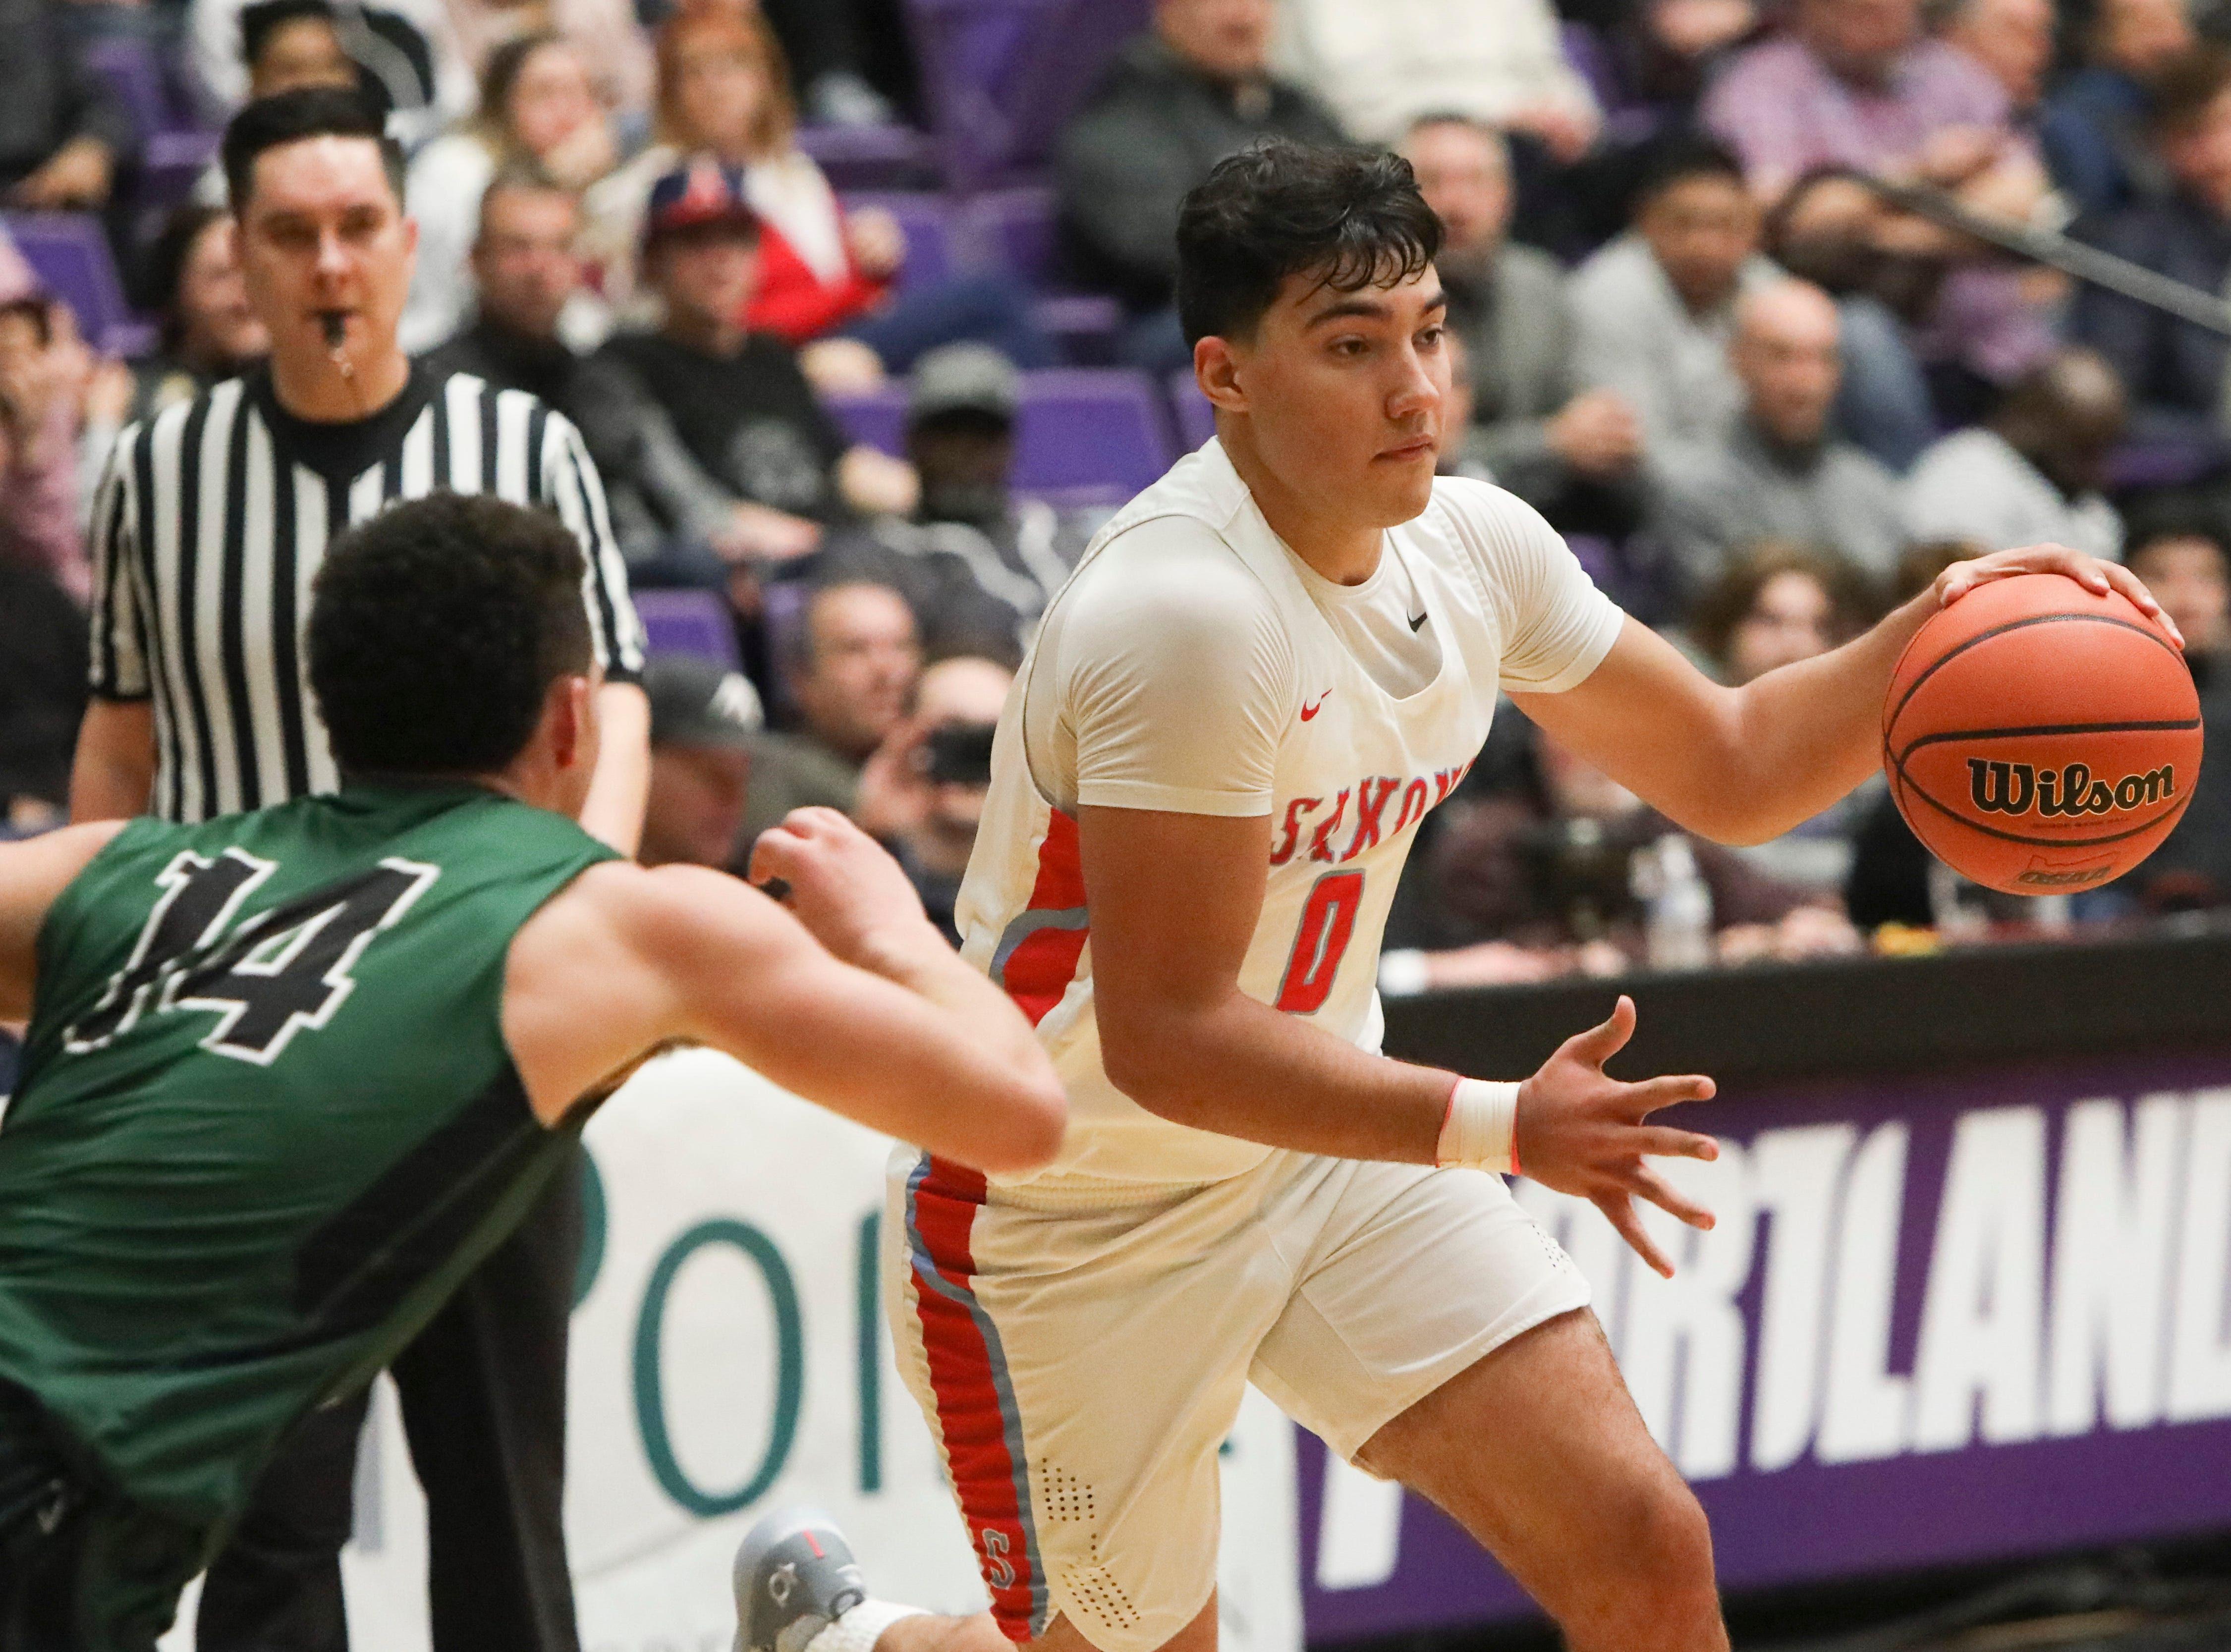 South Salem's Treyden Harris (0) drives past Tigard's Max Lenzy (14) during the OSAA 6A boys basketball state tournament quarterfinal on Wednesday, March 6 at Chiles Center.